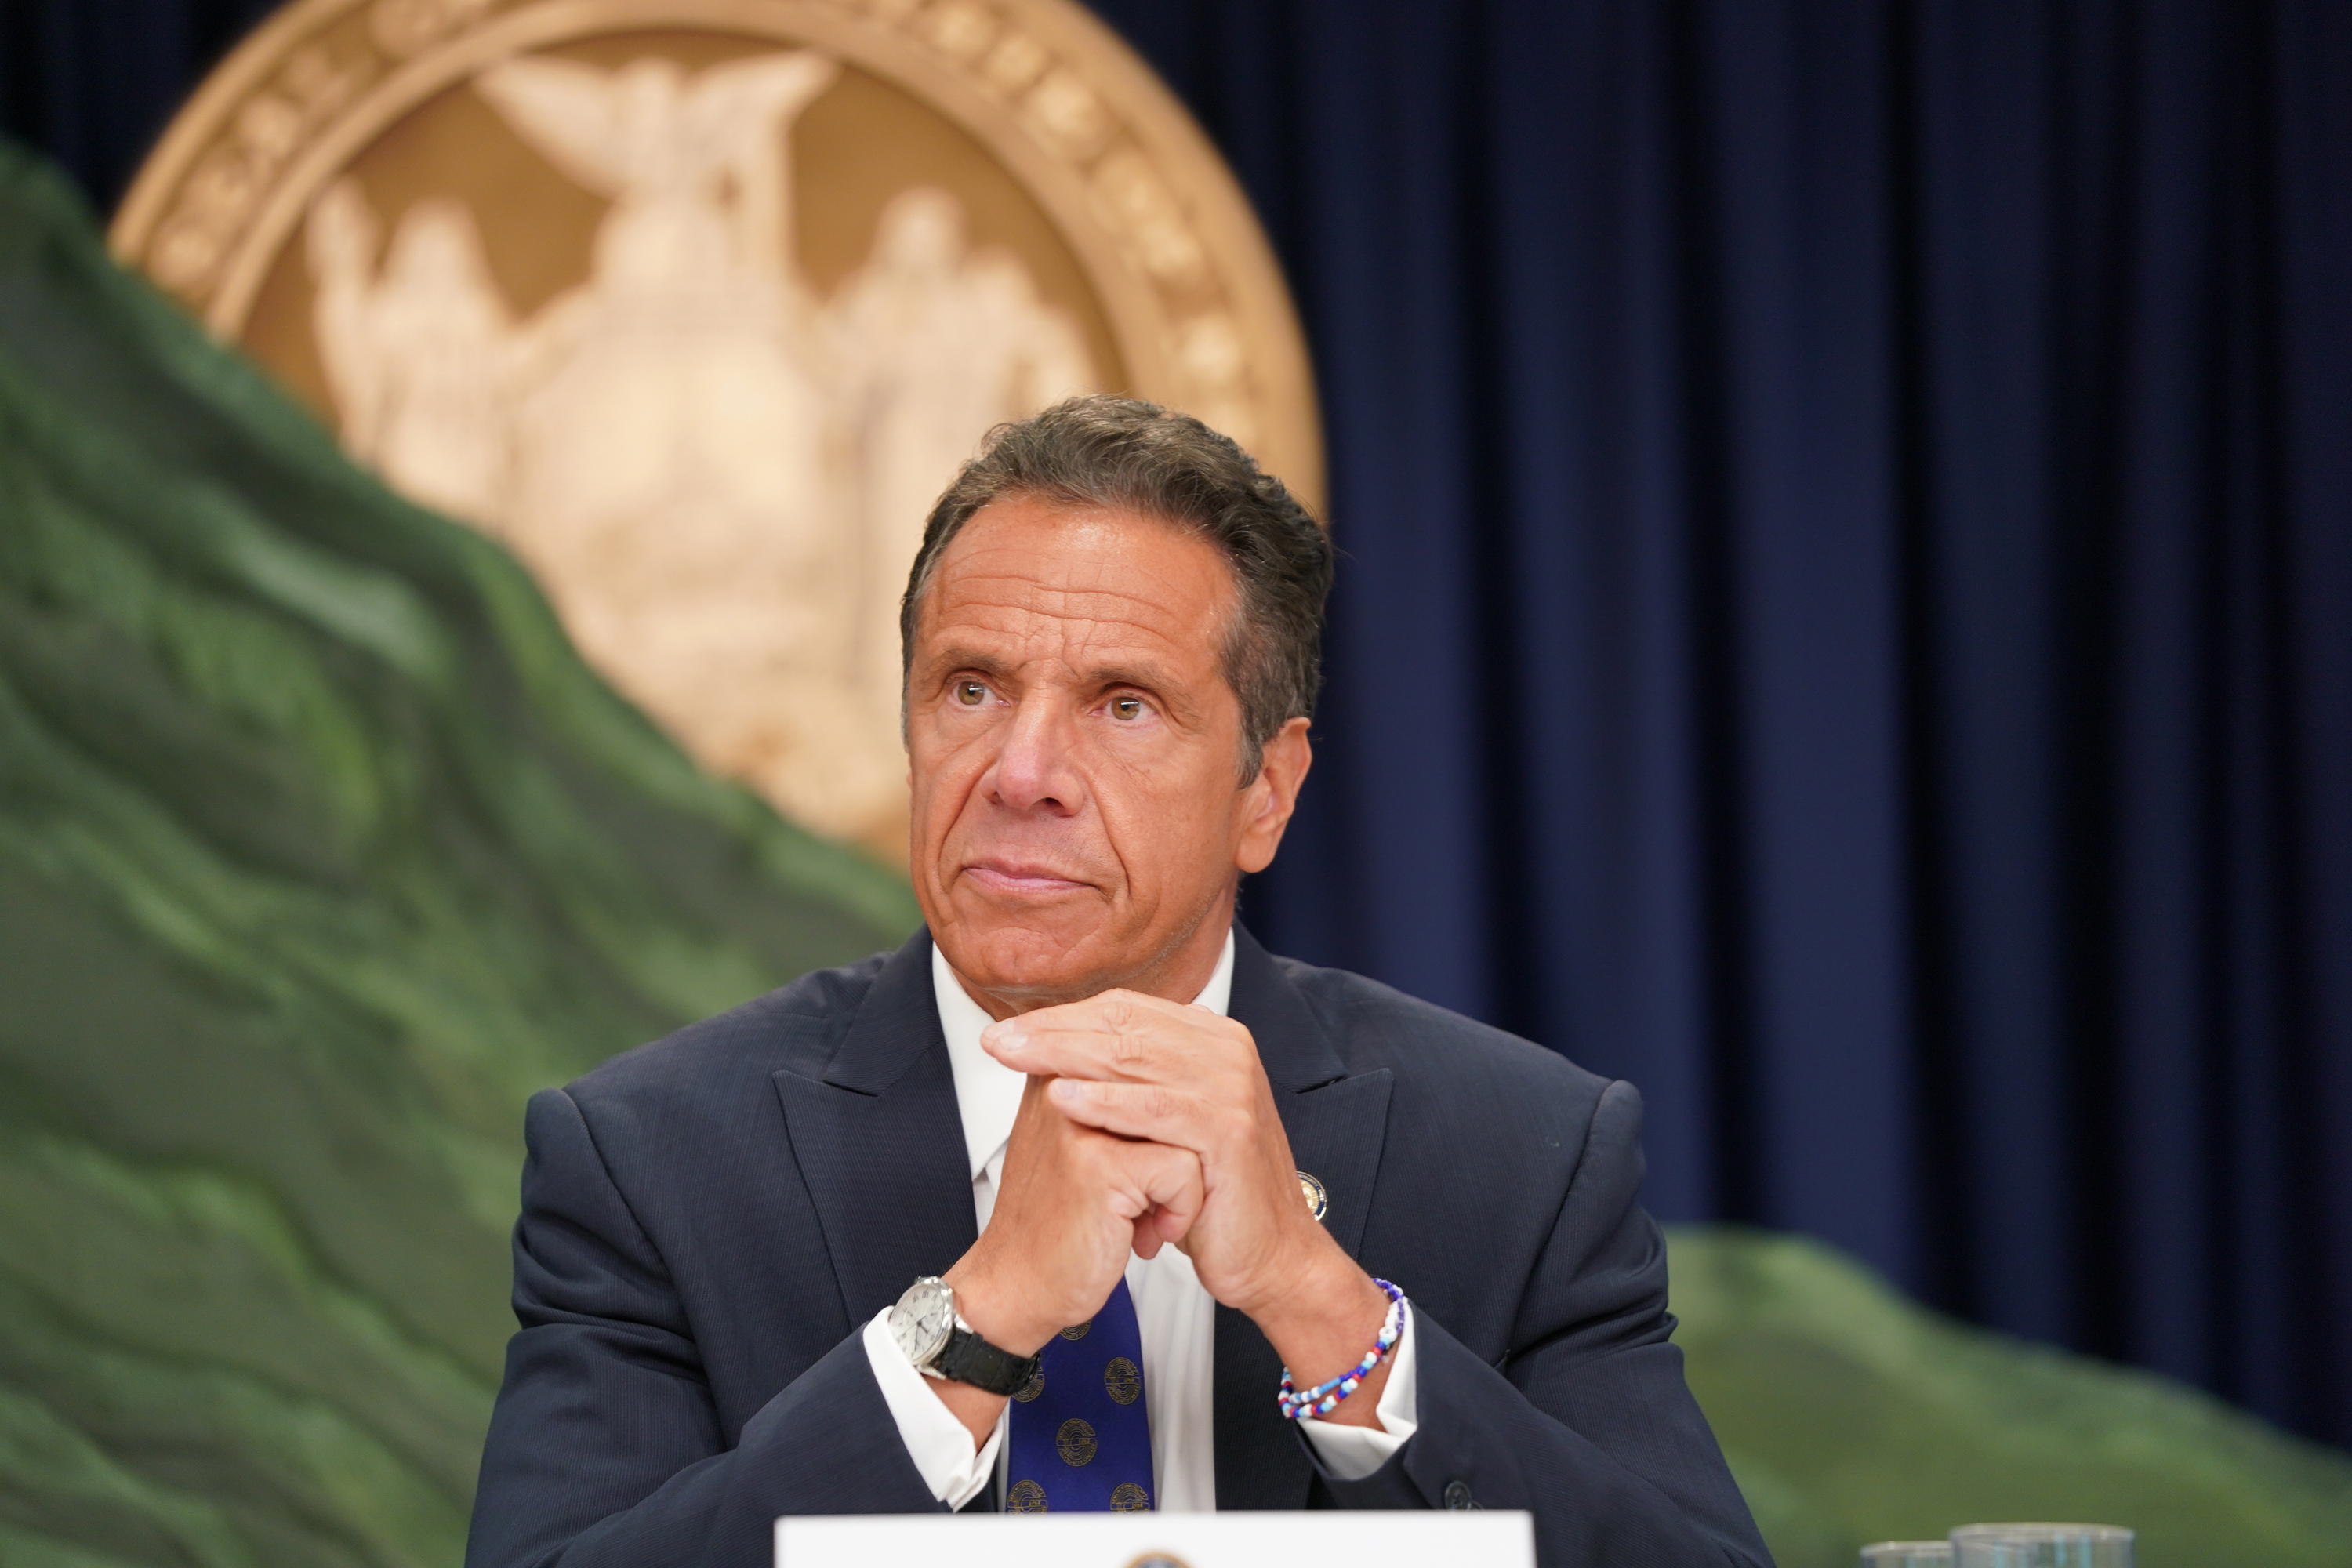 Governor Andrew Cuomo gives an update on the coronavirus outbreak, July 6, 2020.